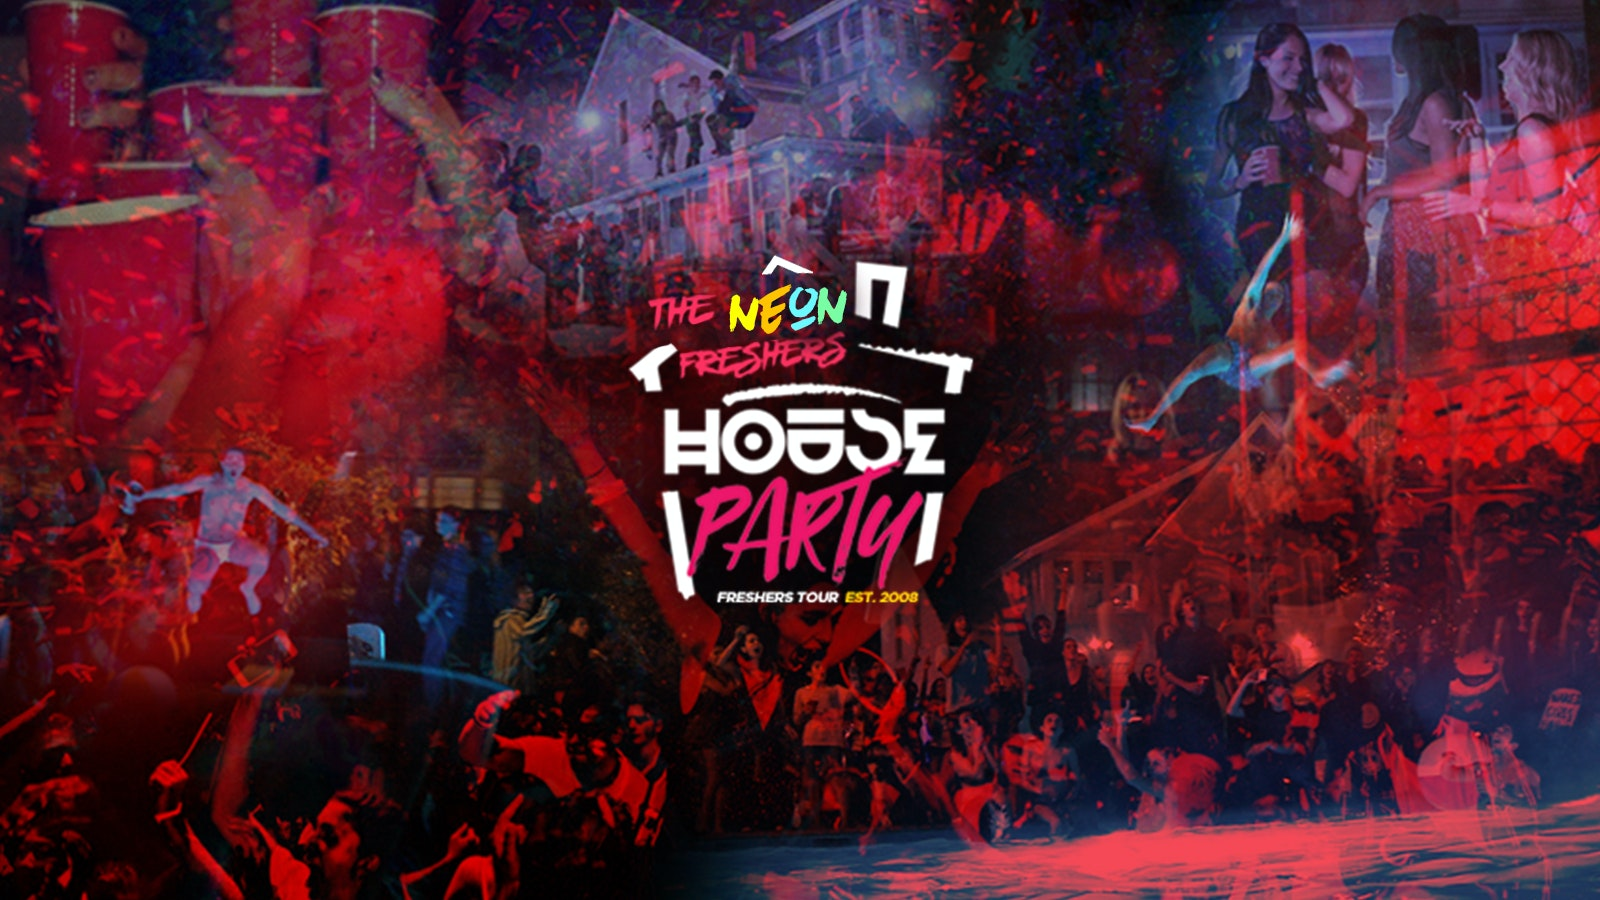 Neon Freshers House Party // Huddersfield Freshers 2020